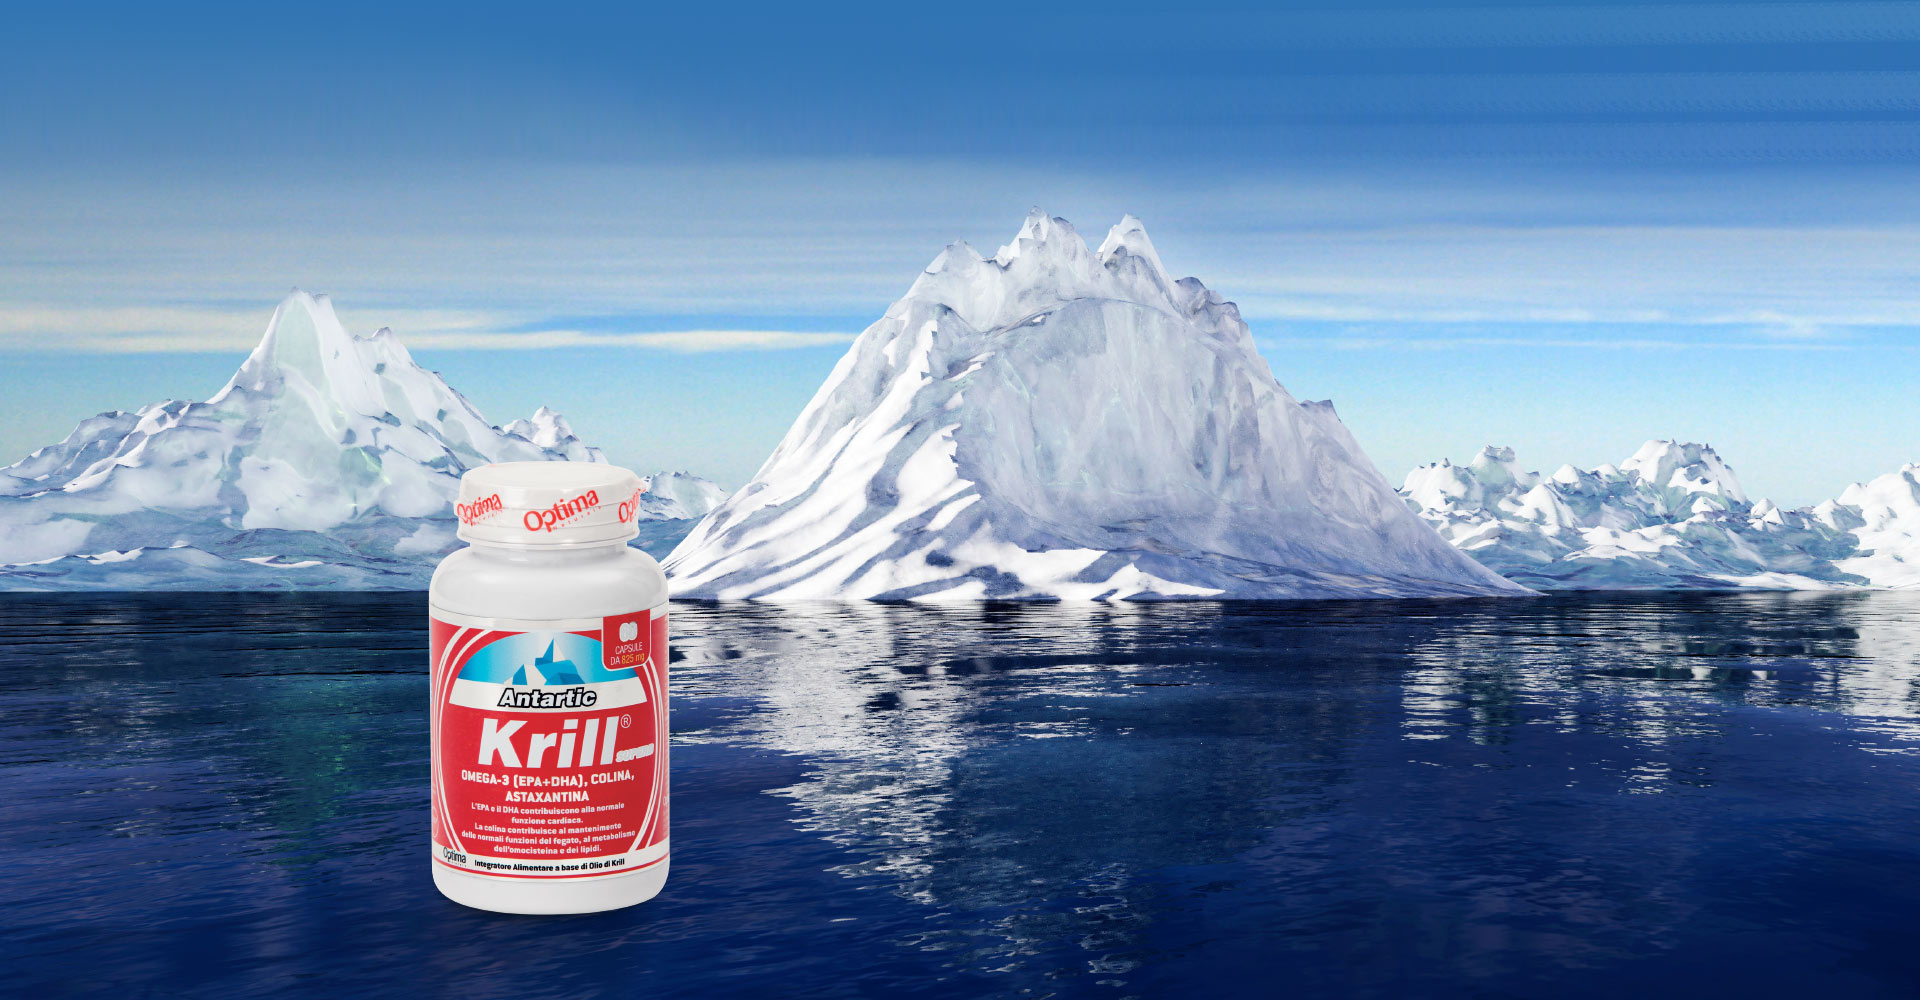 Antartic Krill Superb - Omega 3 from the Antartic